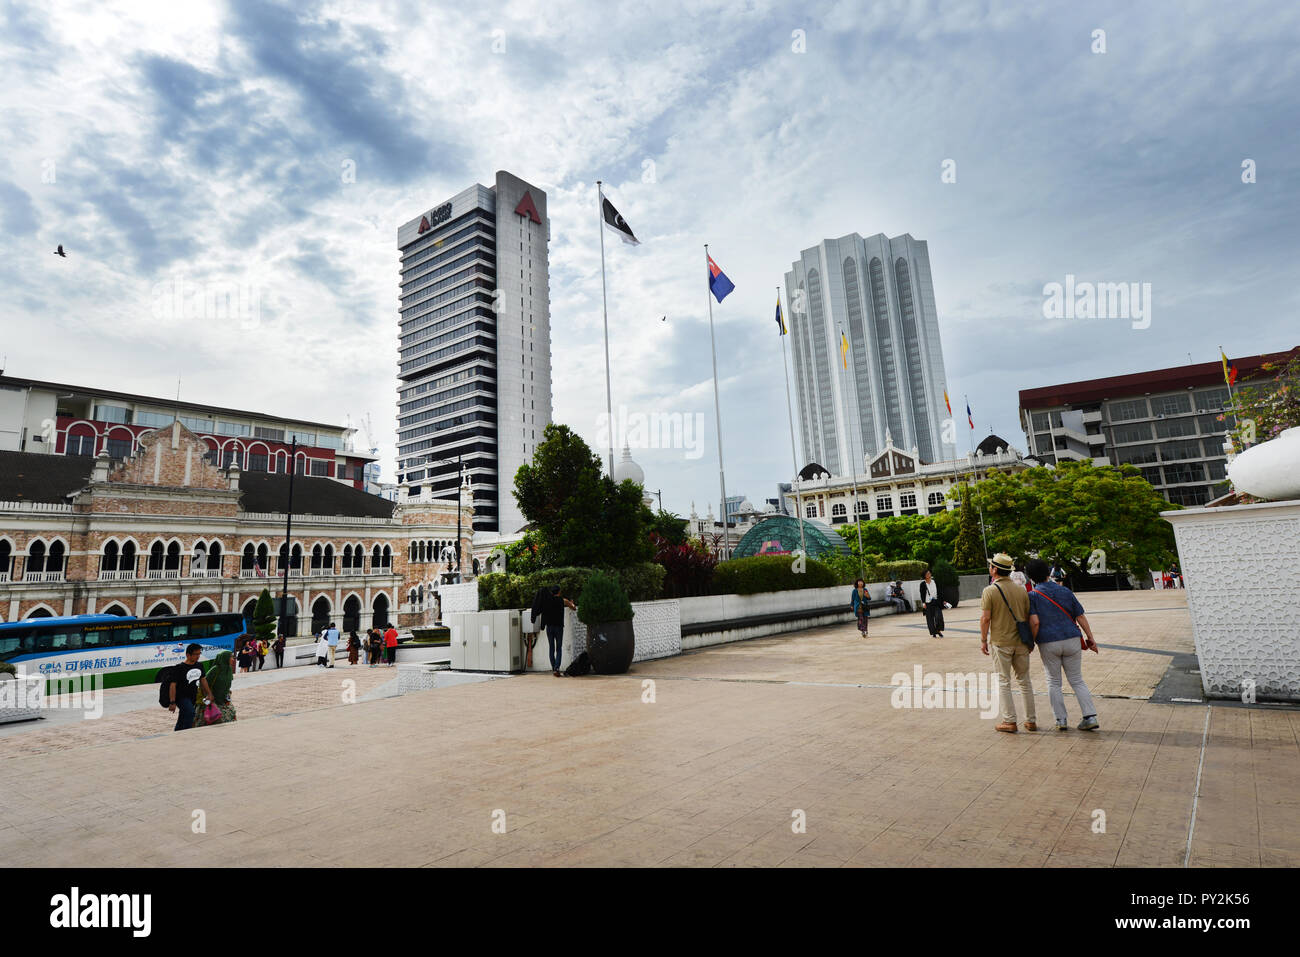 Merdeka Square in the heart of KL, Malaysia. - Stock Image